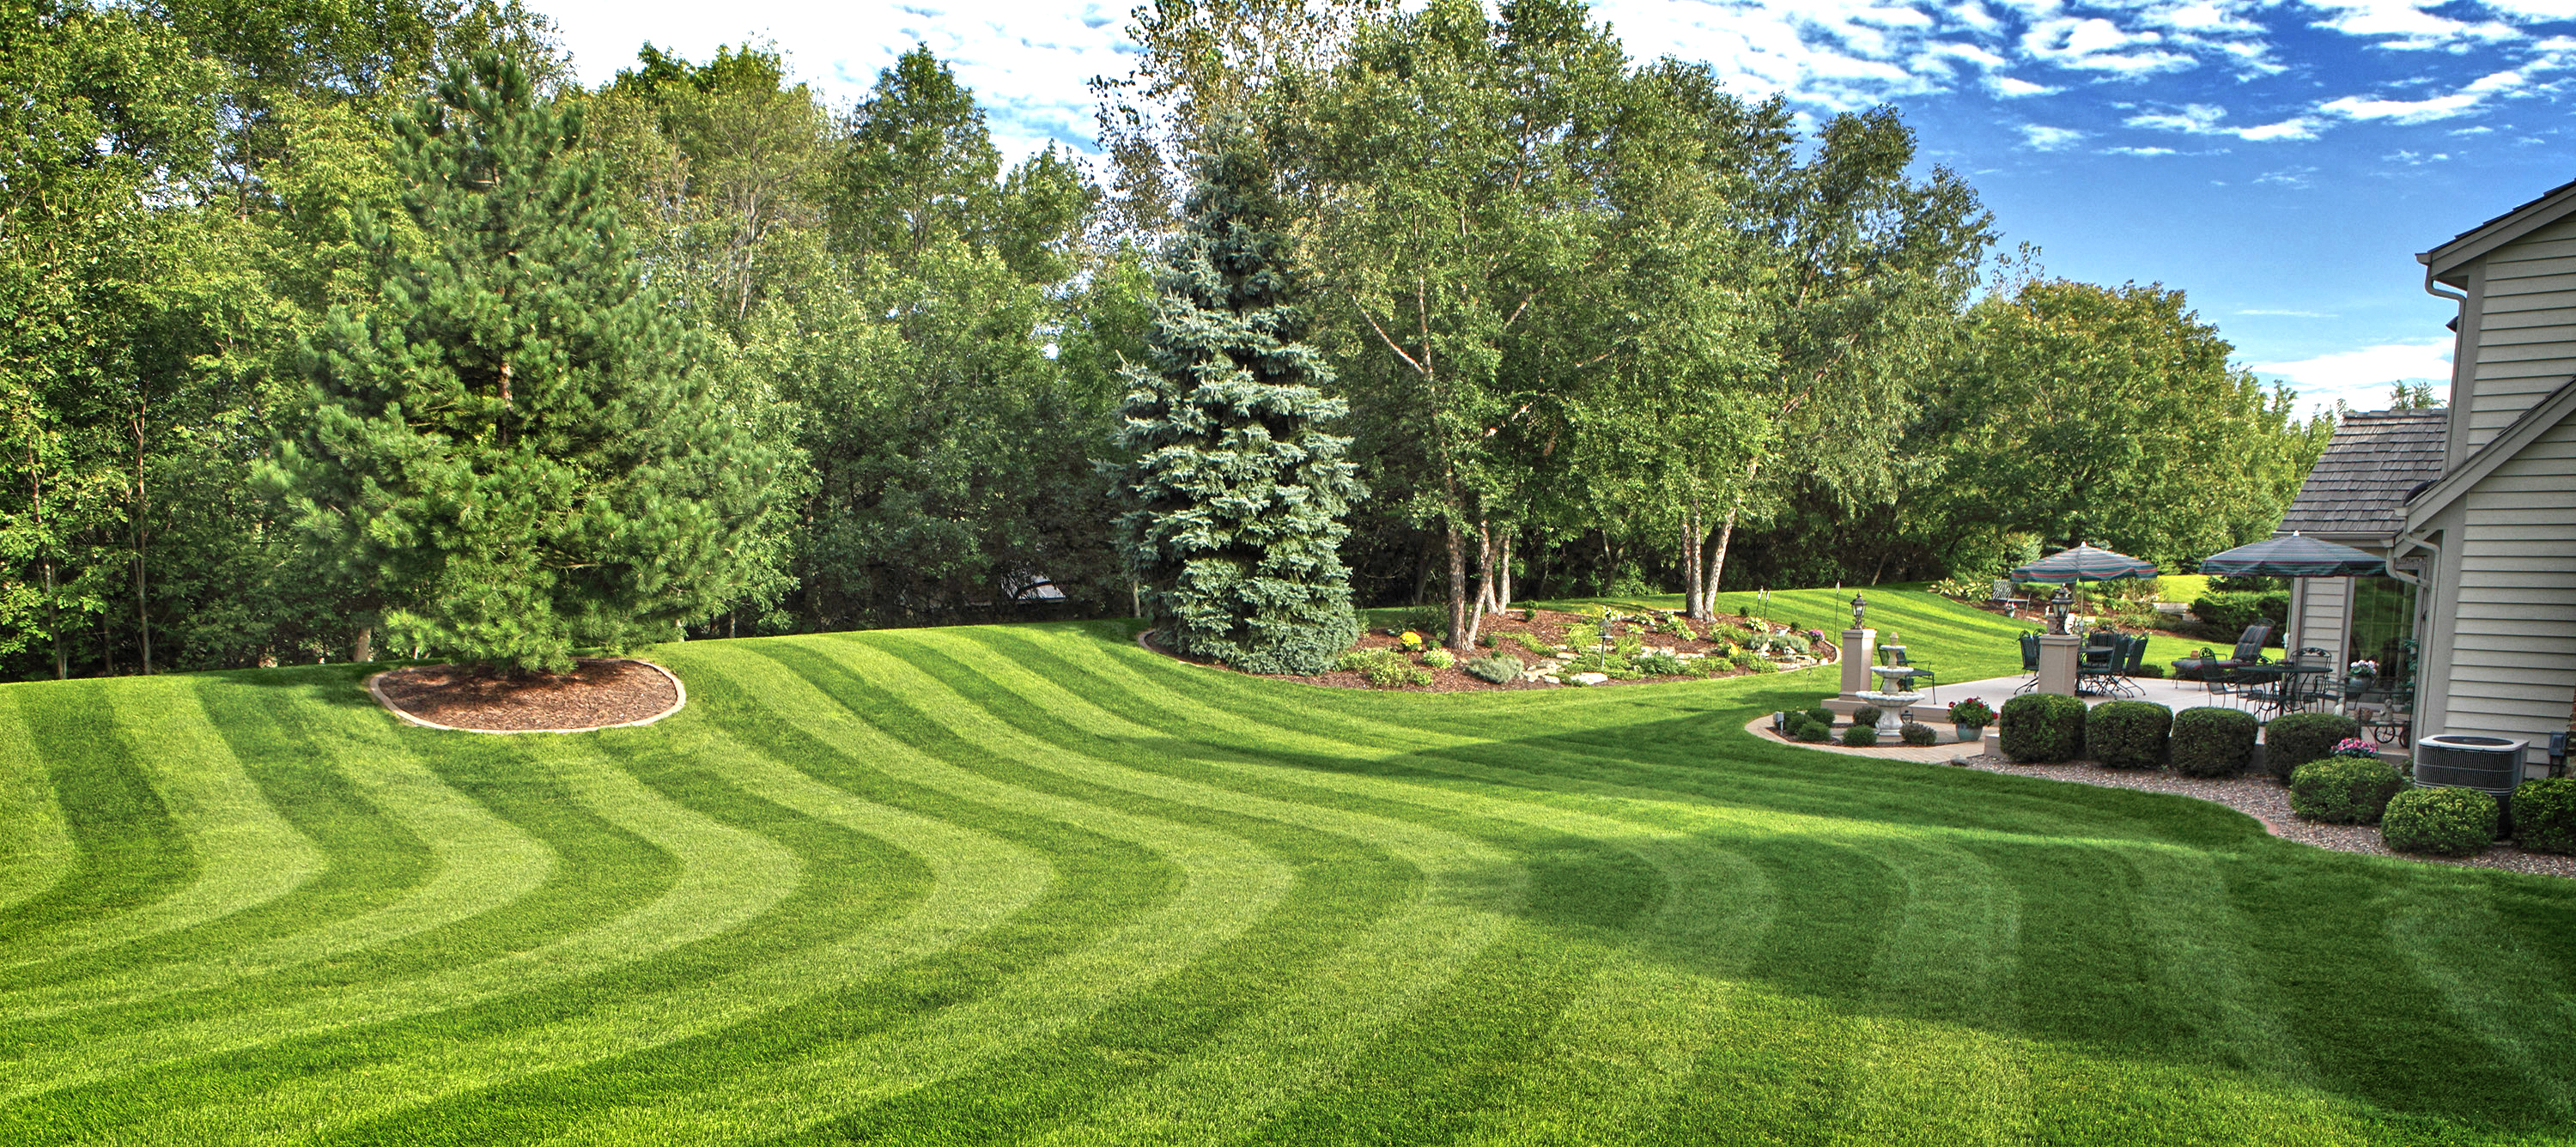 Amazing LAWN CUTTING SERVICES ROCHESTER NY